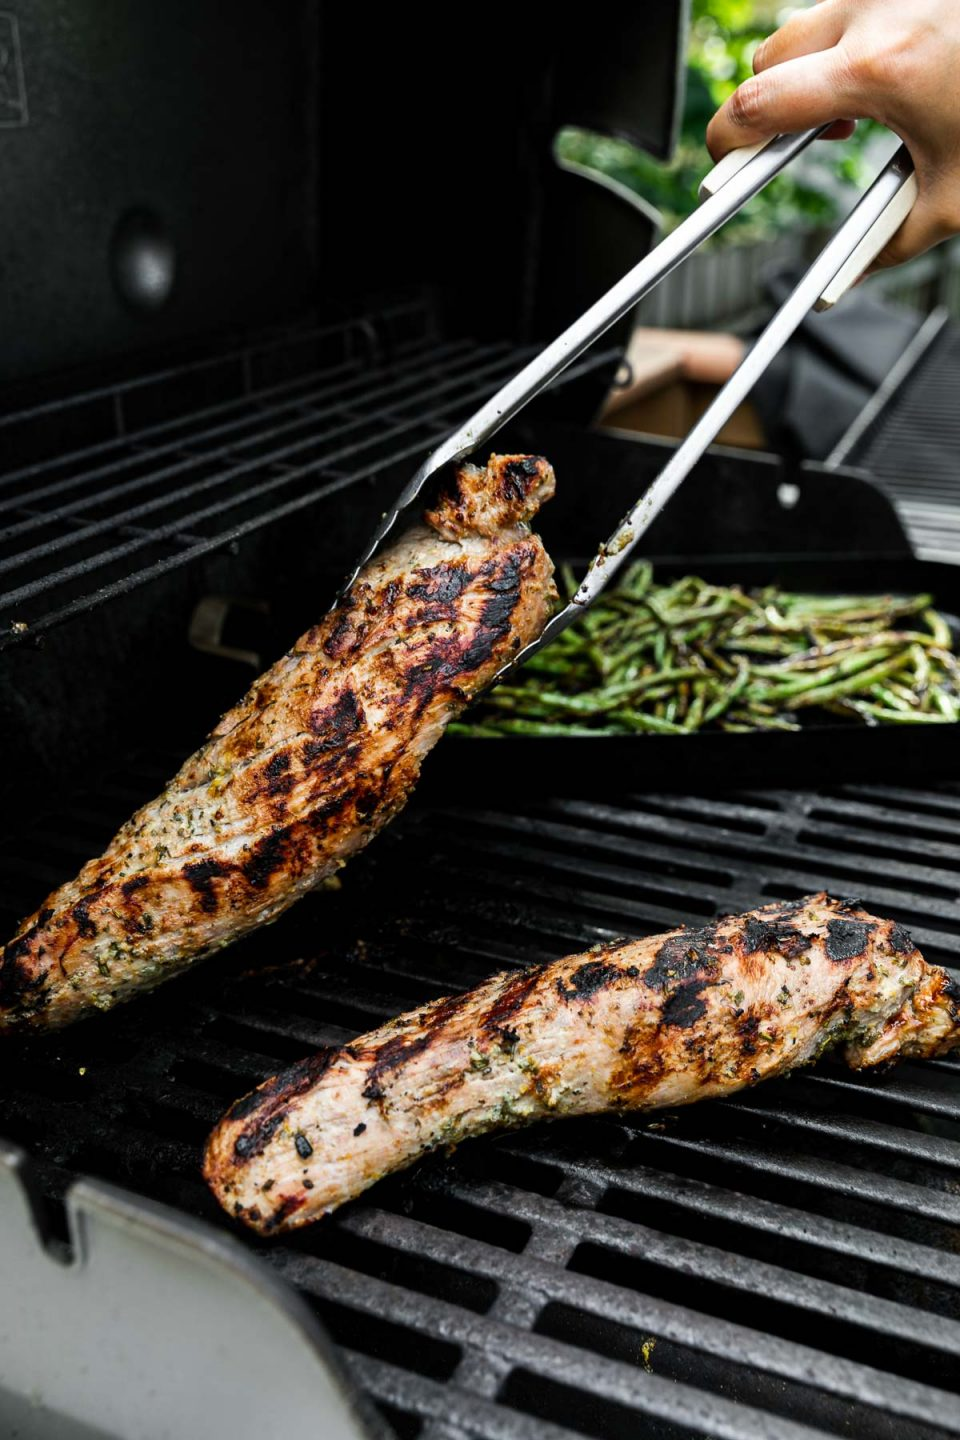 Two Lemon Garlic Grilled Pork Tenderloins on a gas grill. A woman's hand holds a set of grill tongs & is picking up one of the tenderloins to flip it on the grill grates. A grill basket rests on the grill grates in the background with char-grilled green beans cooking.